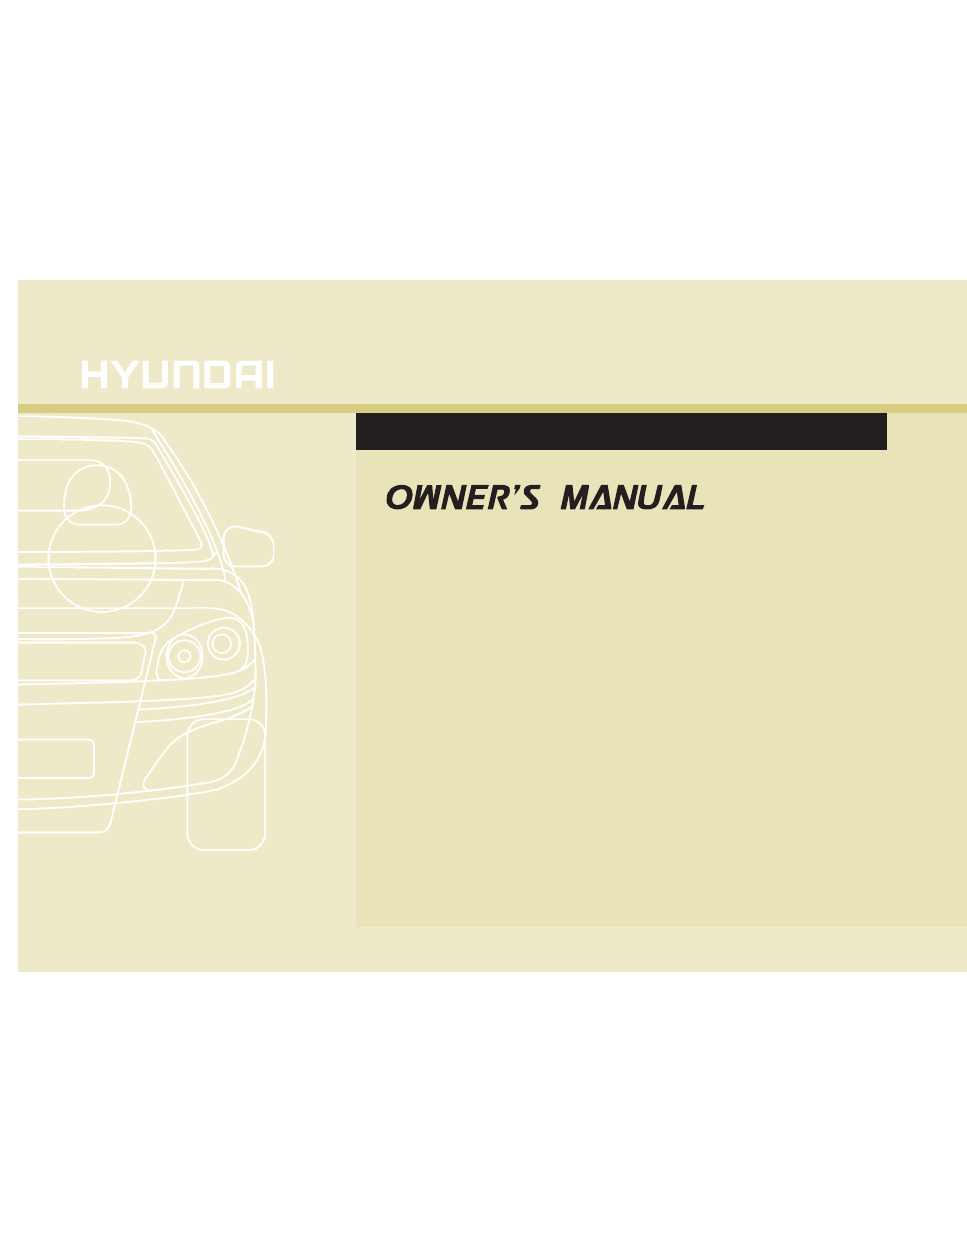 background image. All information in this Owner's Manual ...